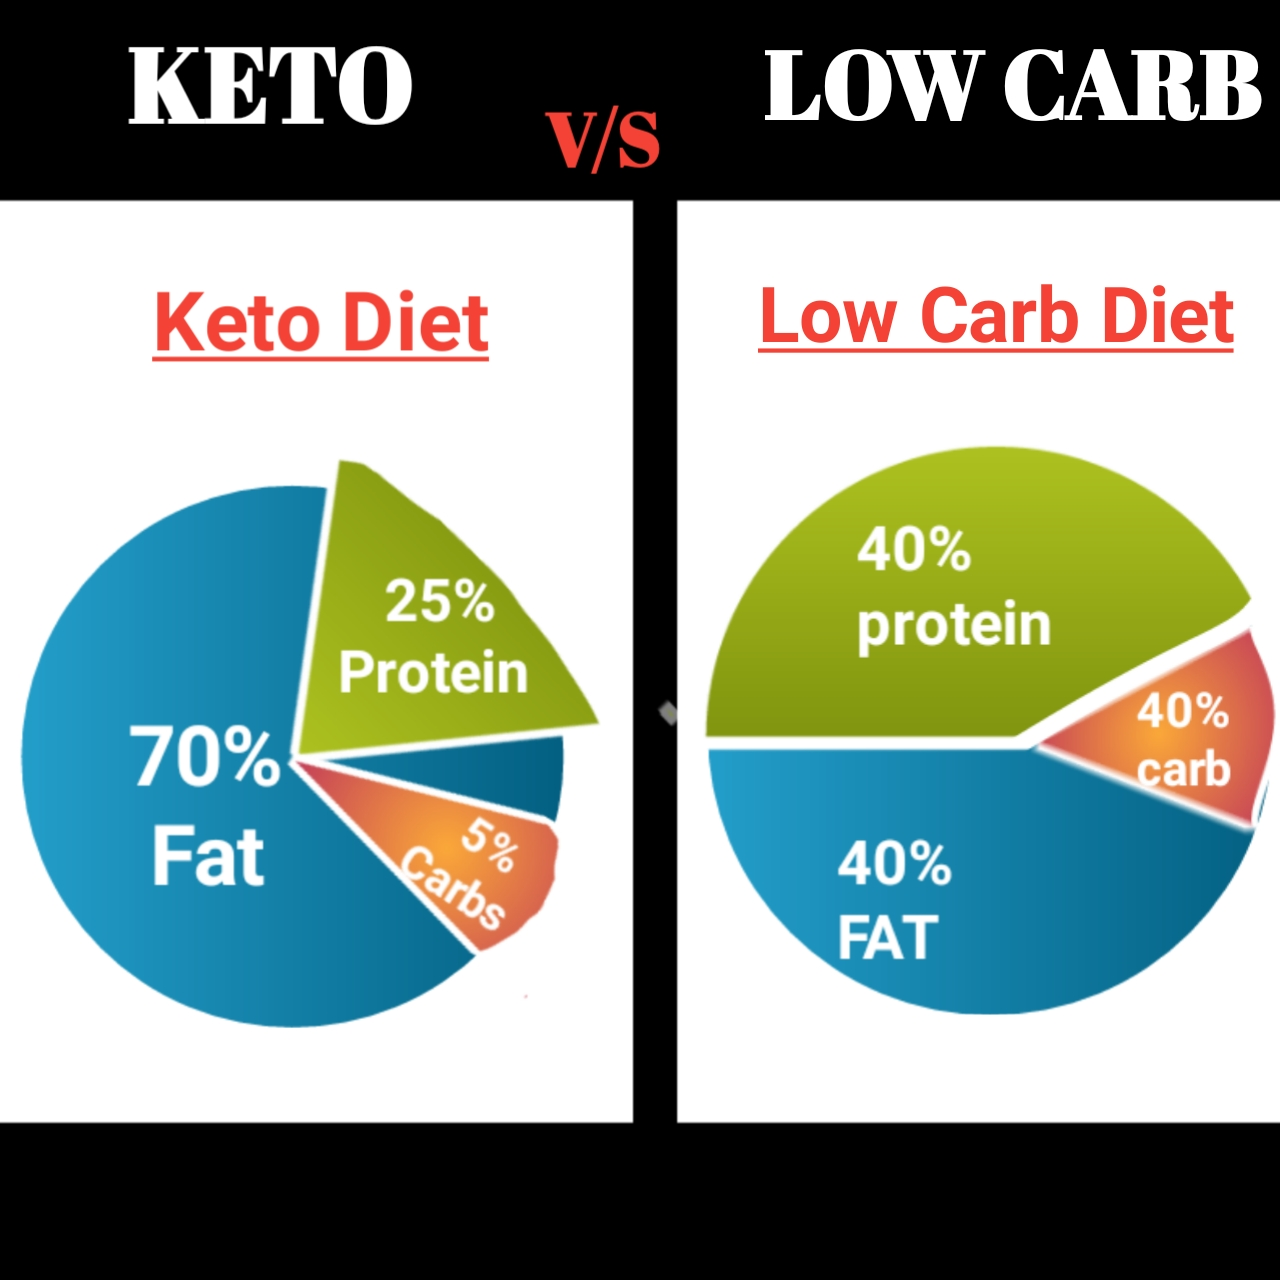 low carb diet vs keto